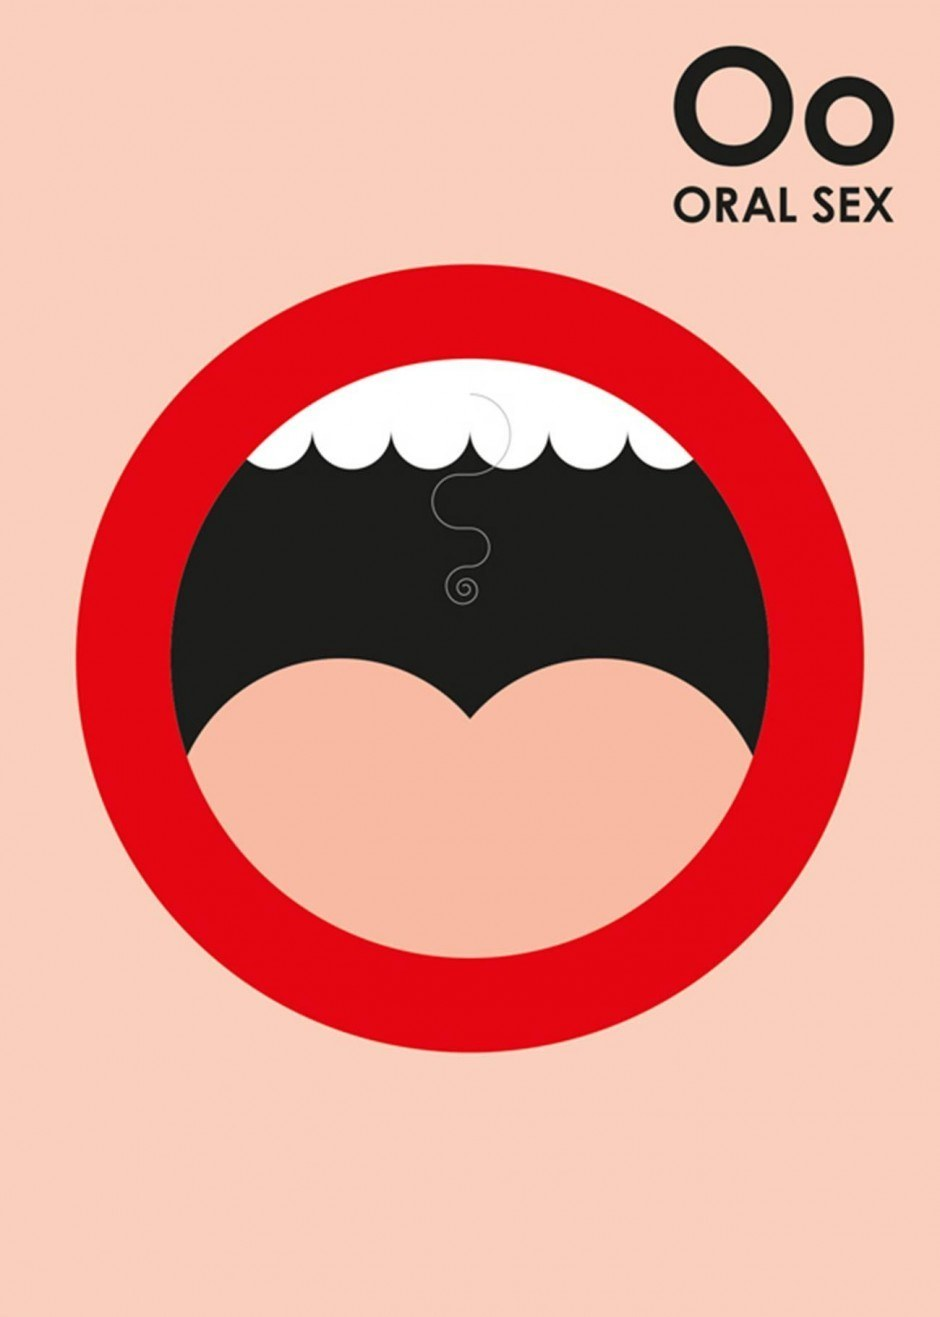 O is for Oral